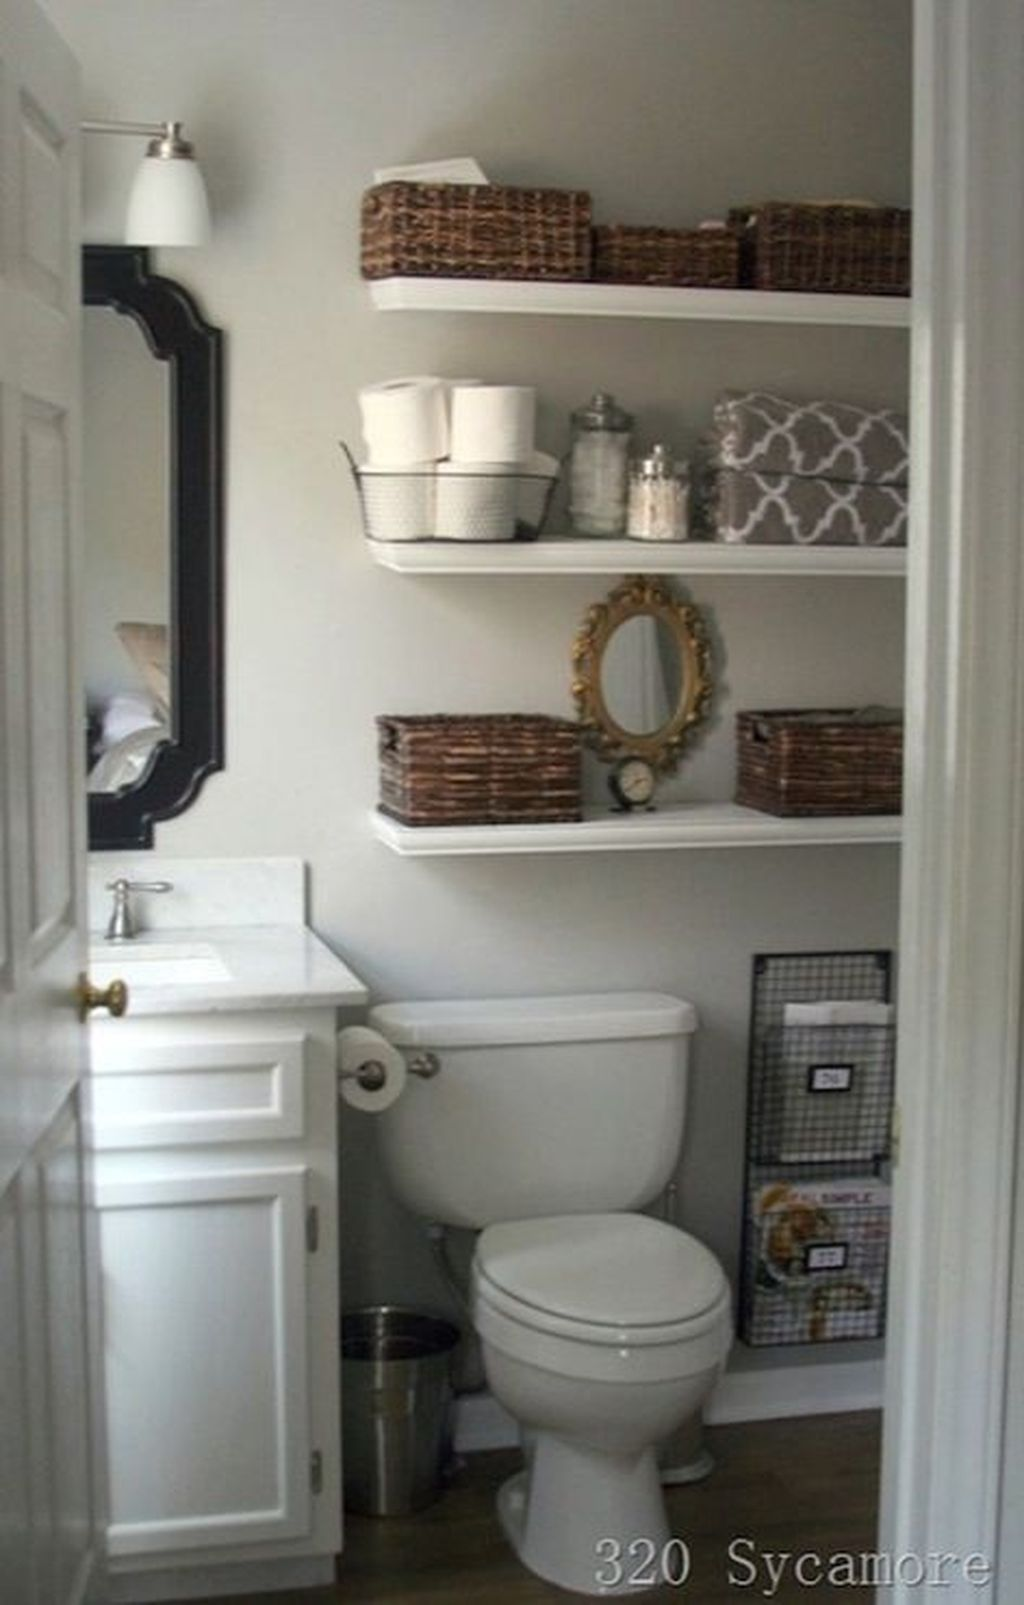 Amazing Bathroom Storage Design Ideas For Small Space 32